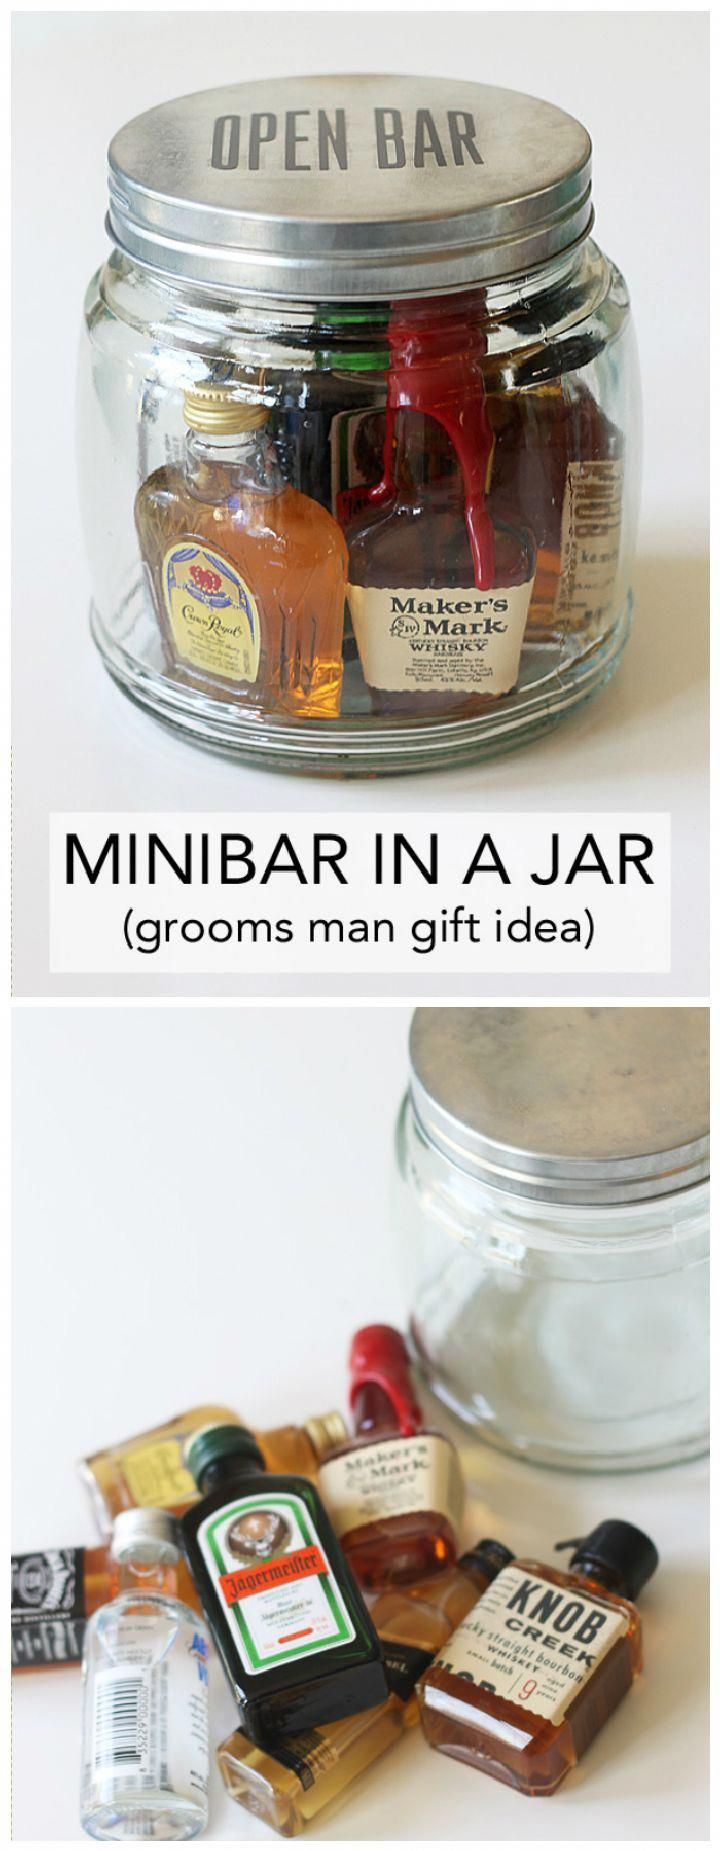 Mini Bar In A Jar Gift 35 Unique Diy Mason Jar Gifts For Everyone I Heart Crafty Mason Jar Gifts Diy Mason Jar Diy